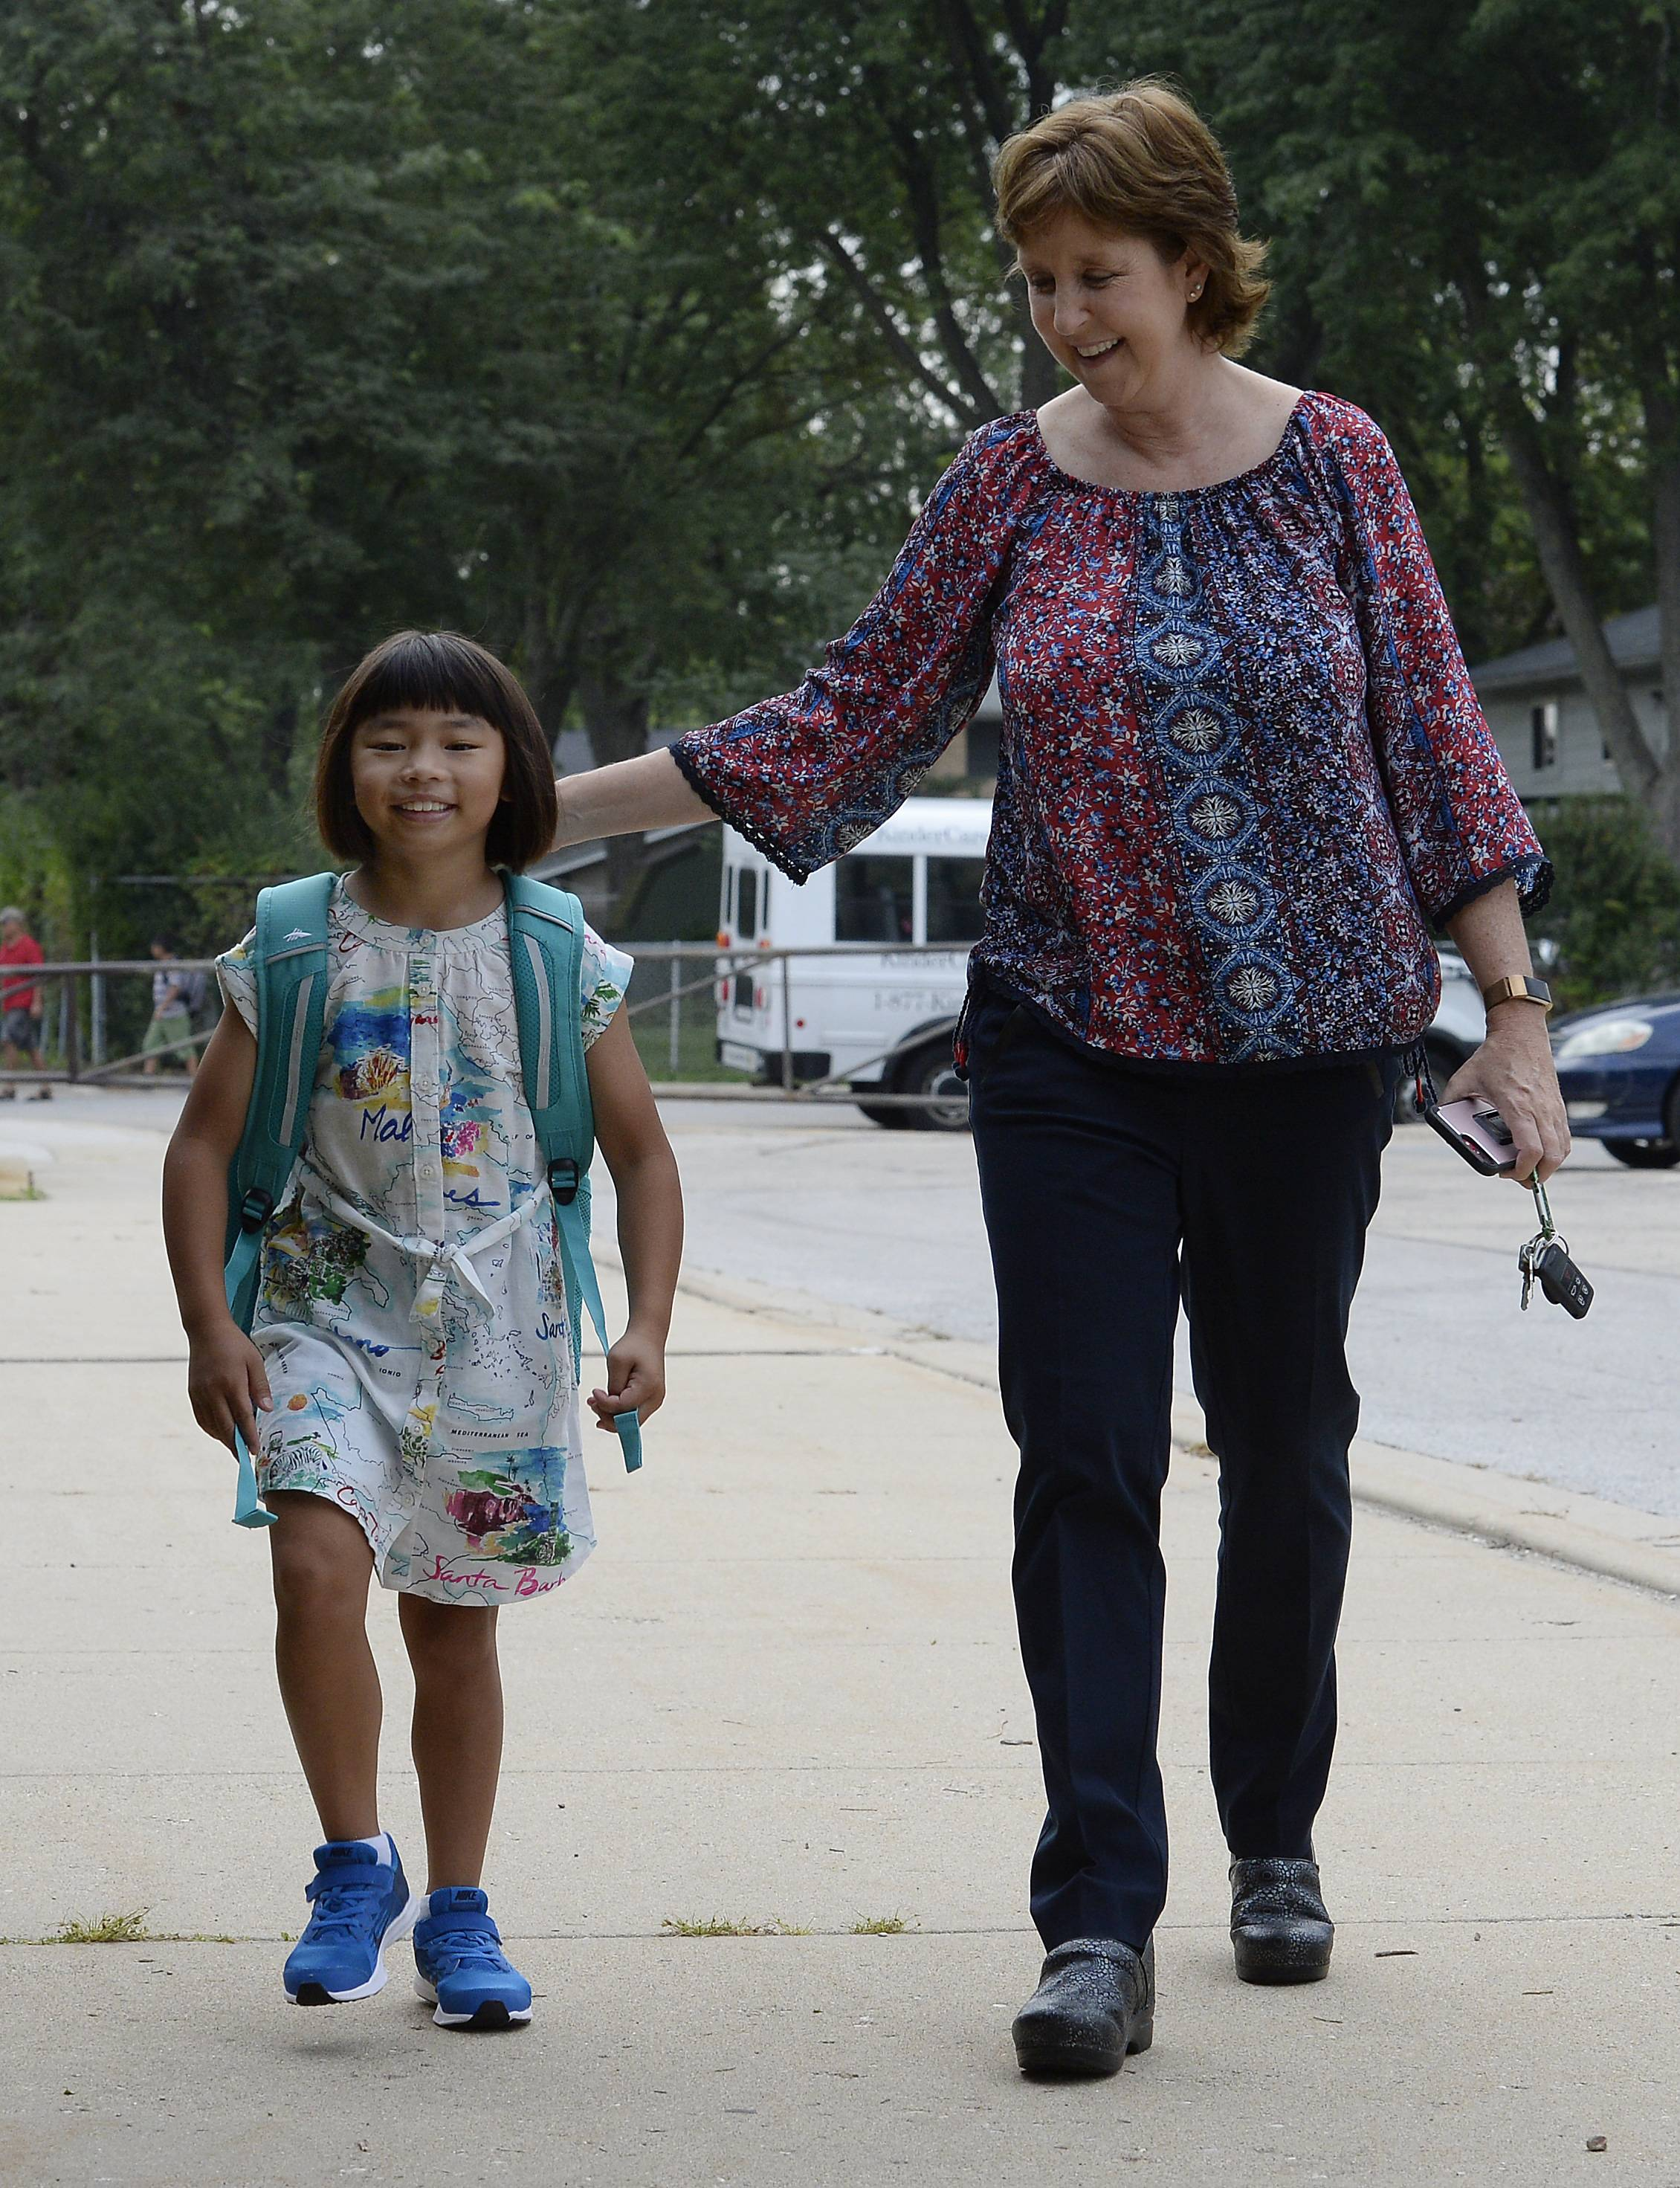 Grace Cimaglio, 8, of Palatine walks with her mom, Kim, as she as Grace heads to her 3rd grade class on her first day of school at Virginia Lake Elementary School in Palatine on Wednesday.